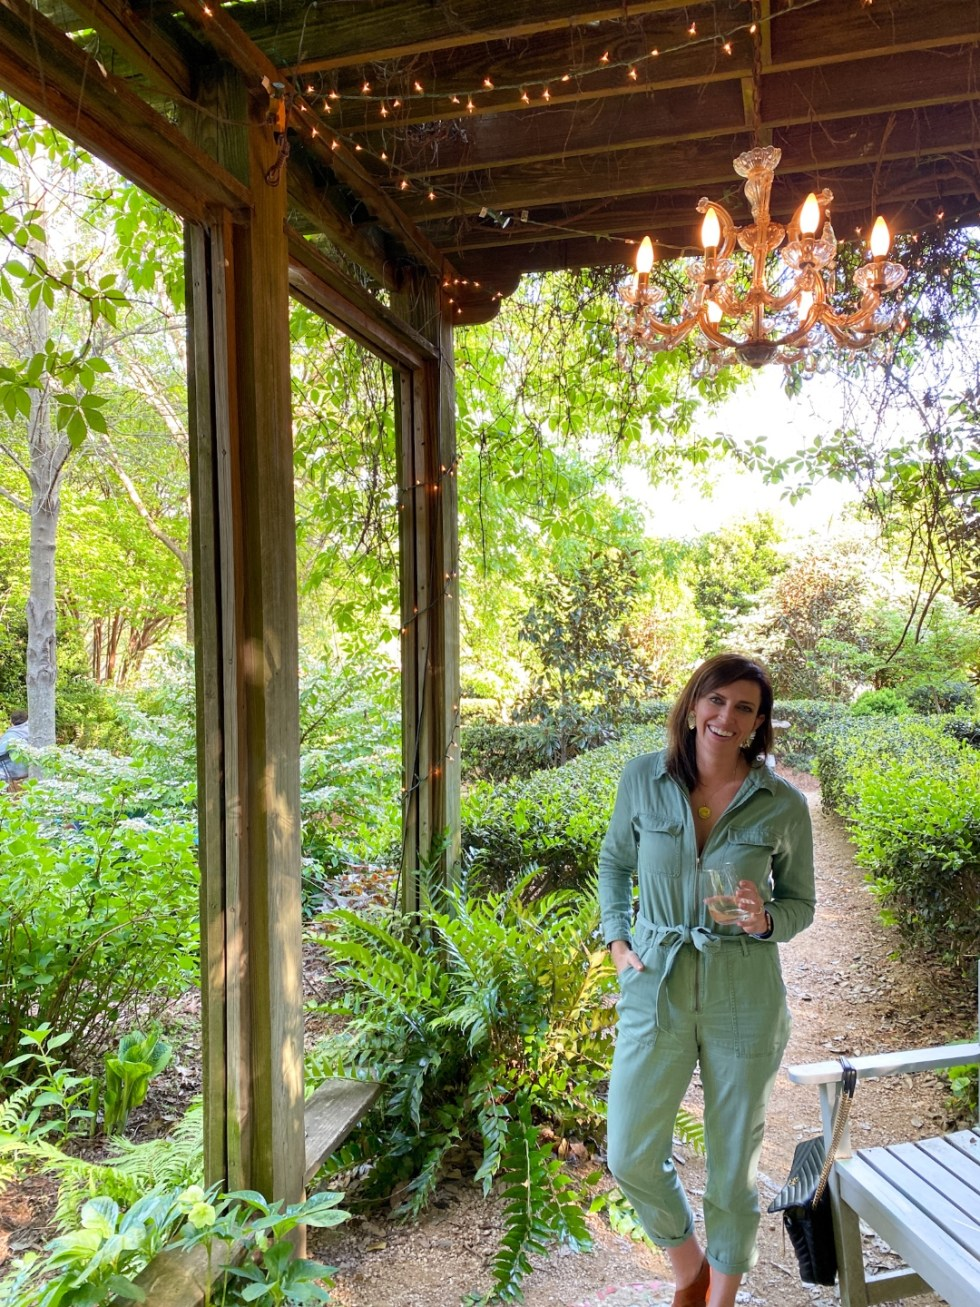 An Update on My North Carolina 100 County Tour - I'm Fixin' To - @imfixintoblog | Things to do in North Carolina by popular NC travel blog, I'm Fixin' To: image of a woman wearing a green jumpsuit and holding a glass of white wine.